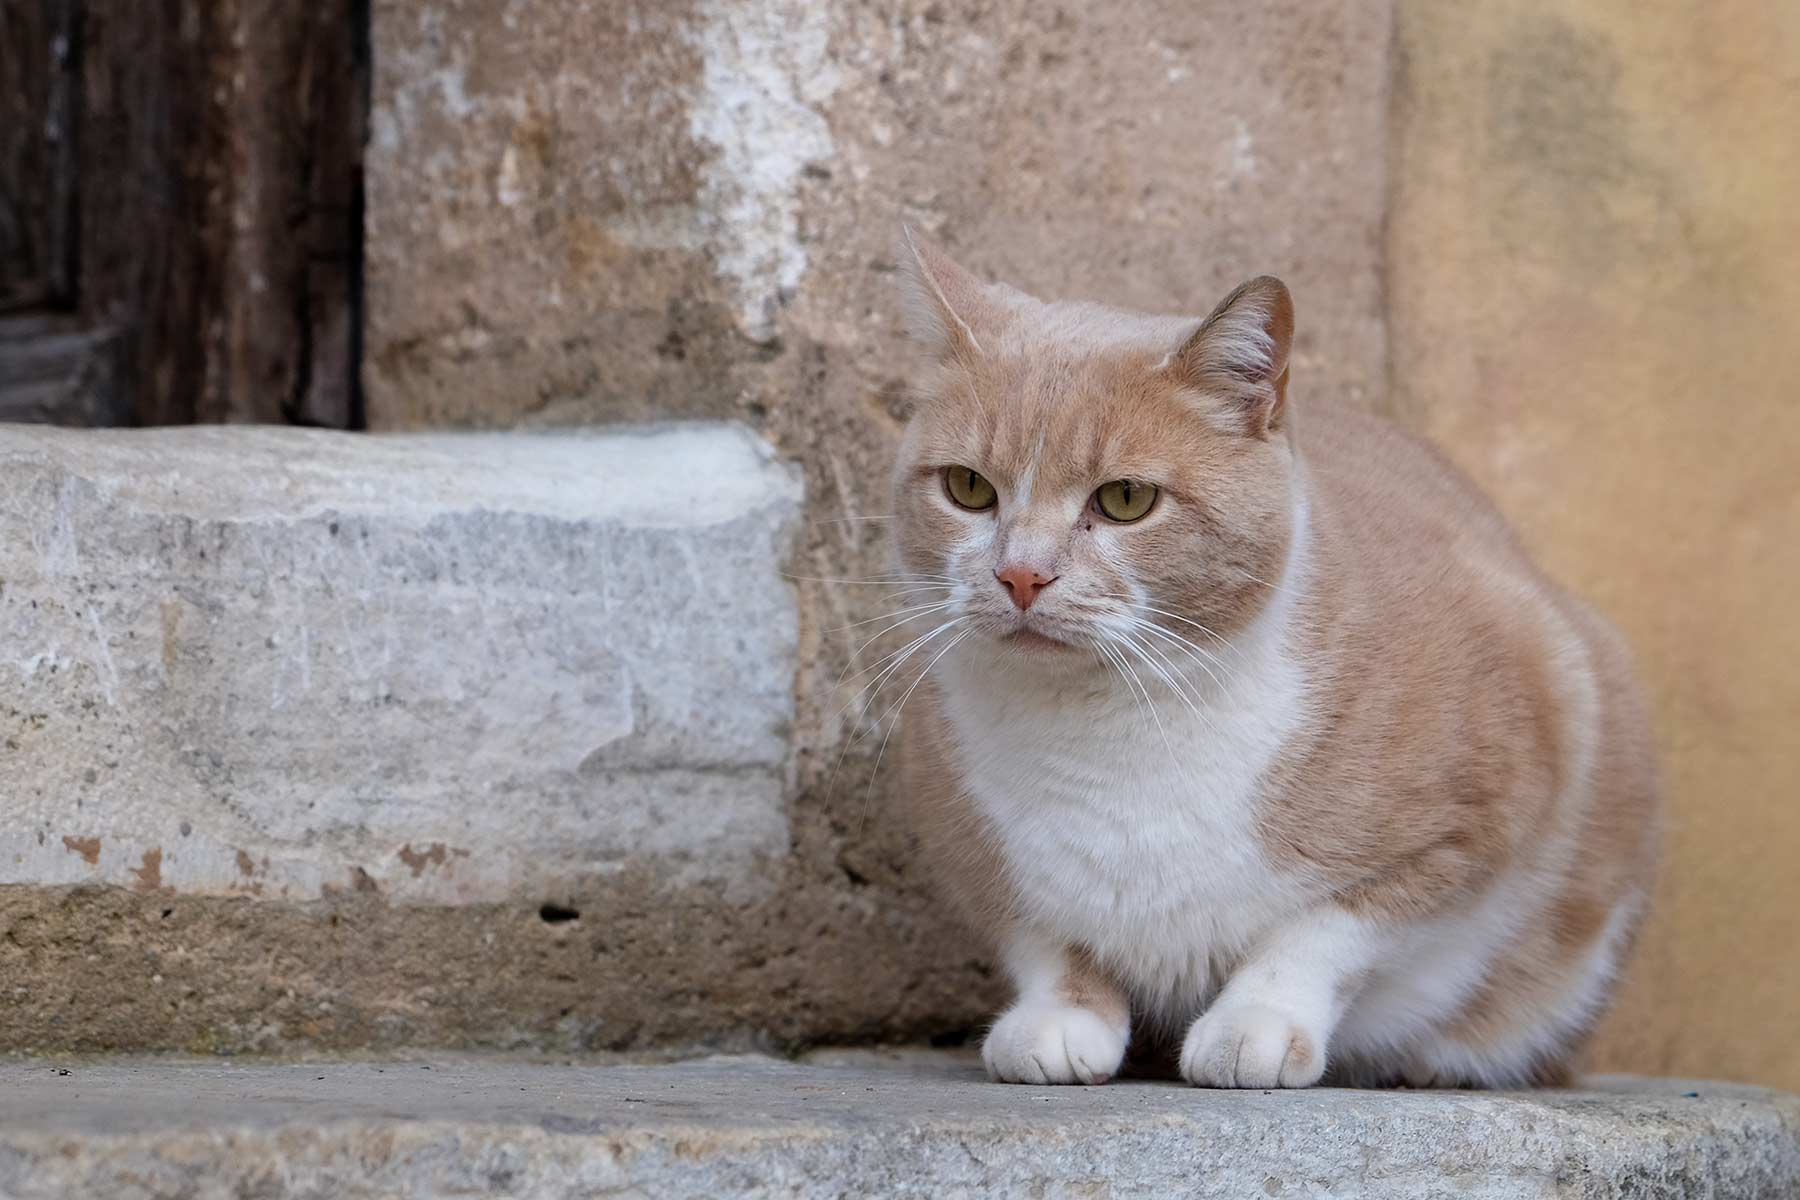 Katze in Roussillon in der Provence, Frankreich